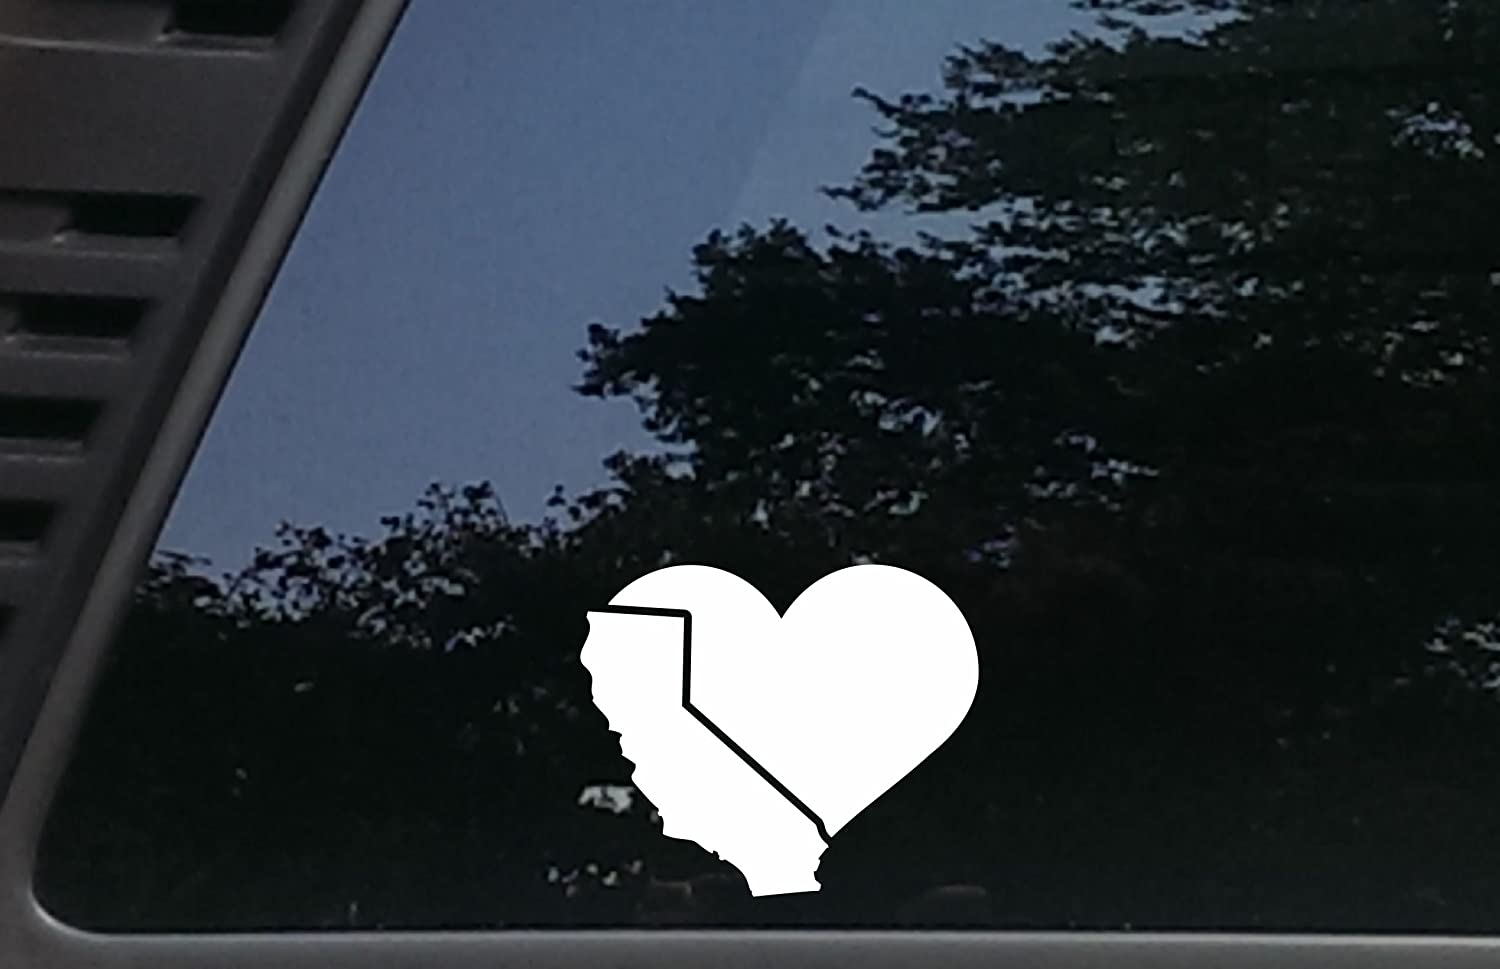 """California is in my Heart - 4 1/2"""" x 3 3/4""""die cut vinyl decal for cars, trucks, windows, boats, tool boxes, laptops, etc"""